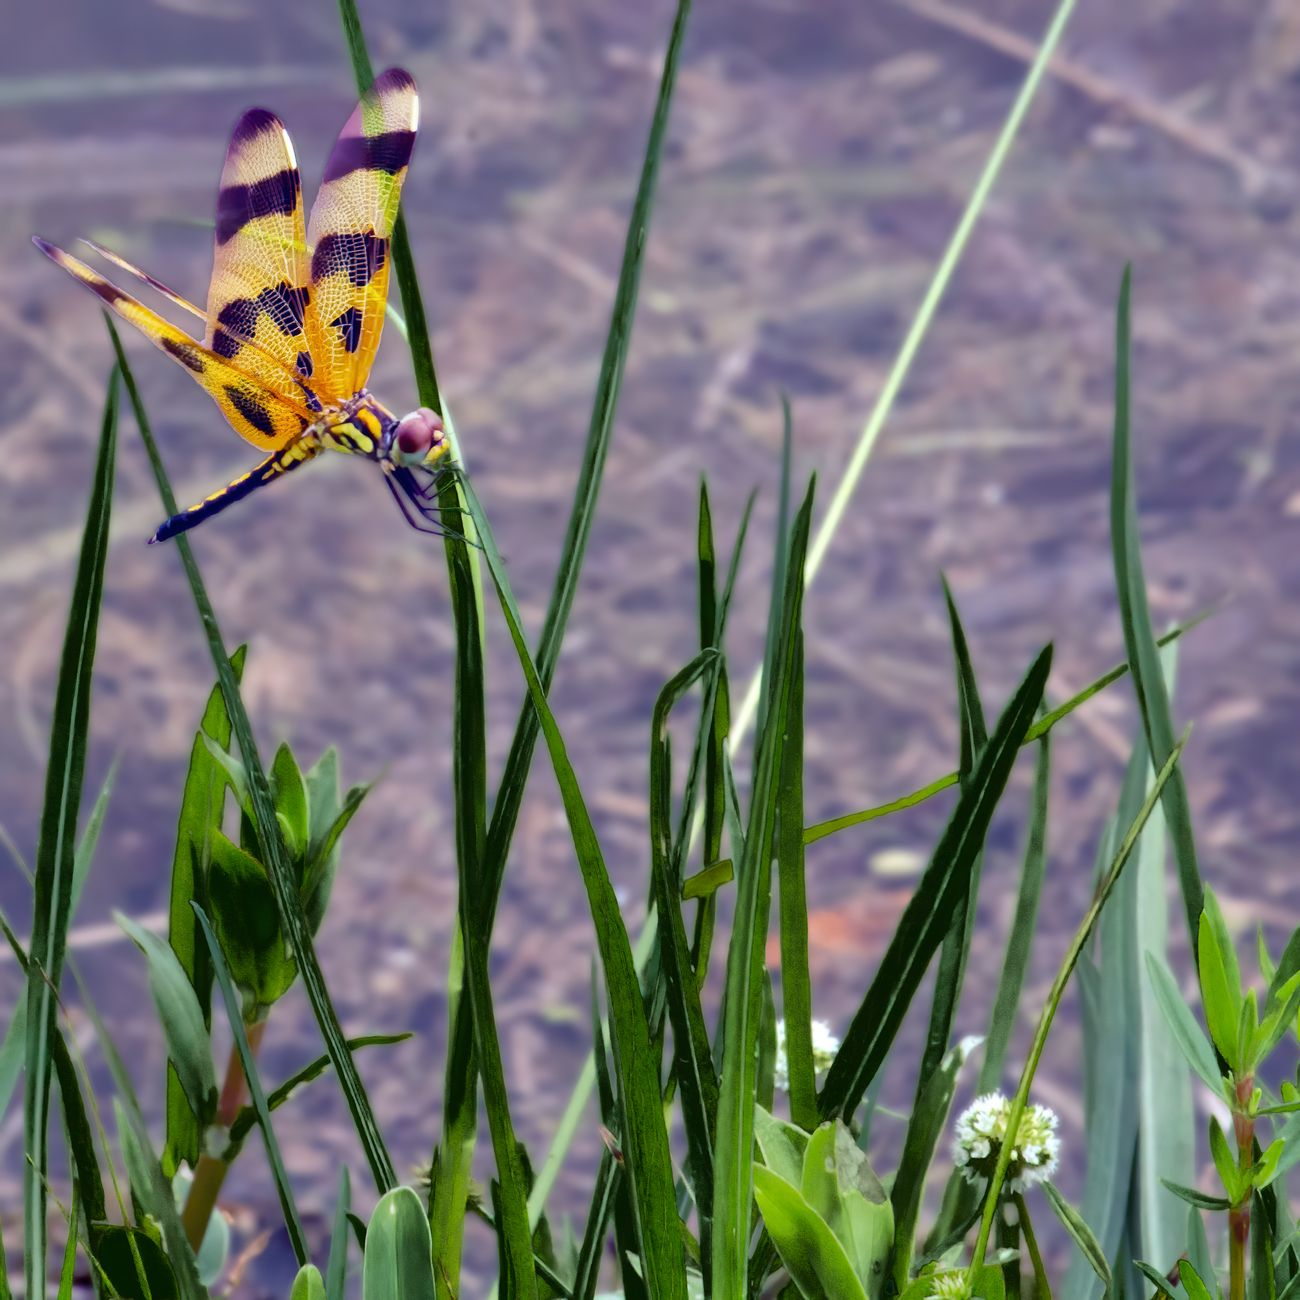 Yellow dragonfly resting on a grass blade at the edge of a lake.